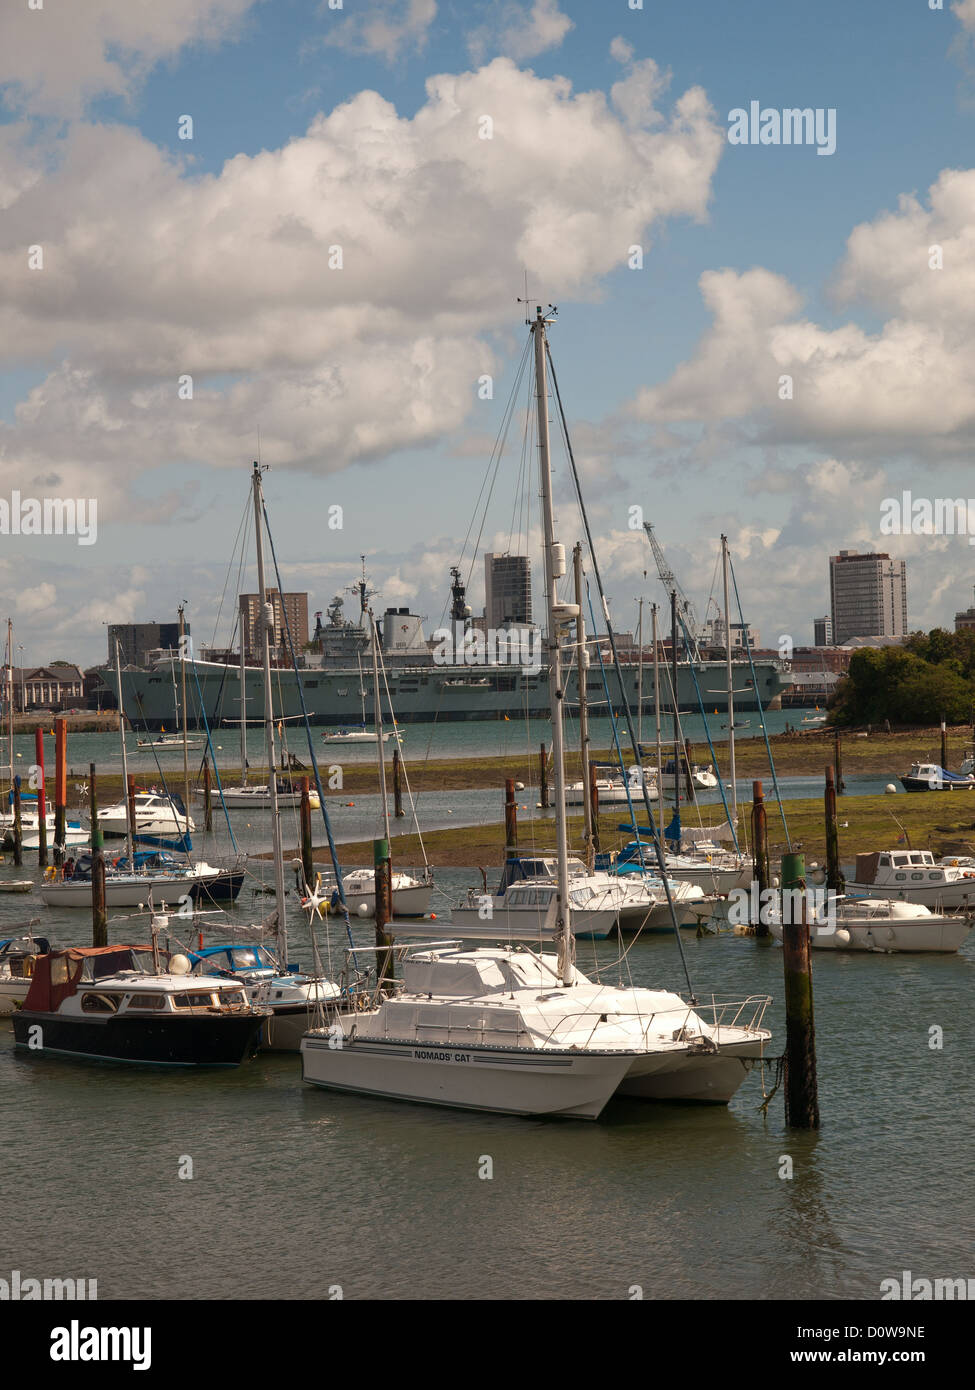 View from Gosport of Portsmouth harbour showing Royal Navy ship HMS Illustrious berthed up. - Stock Image